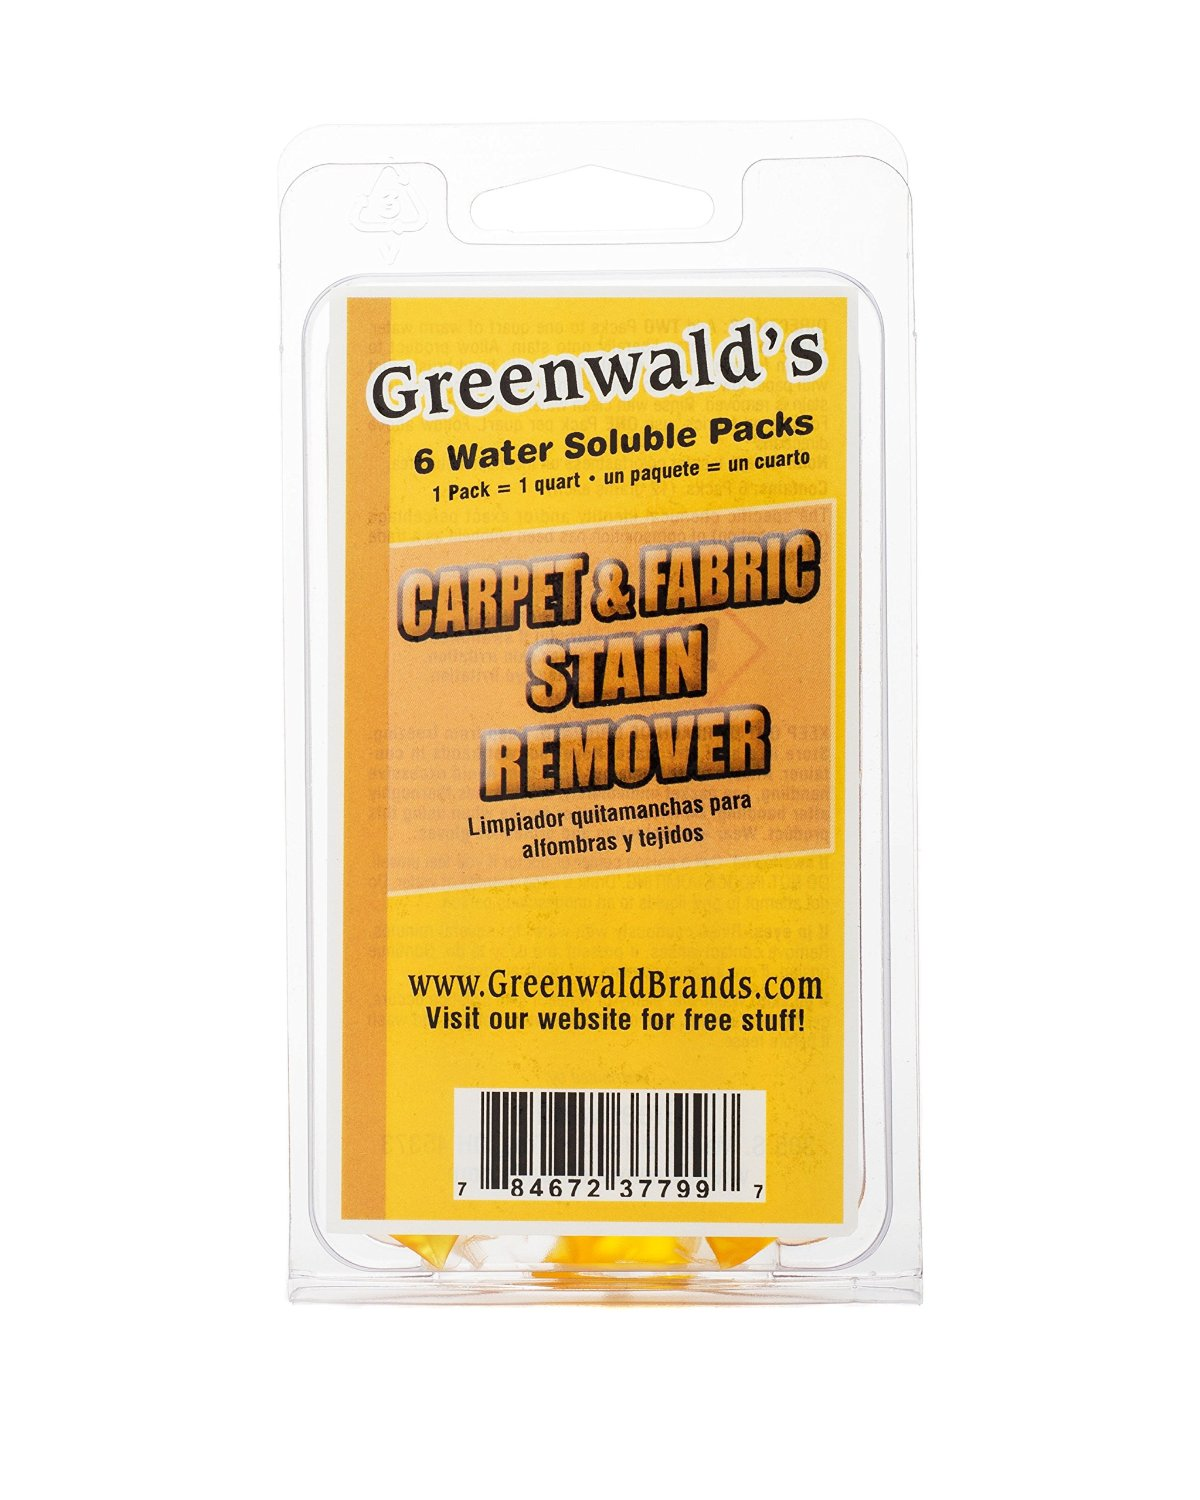 Sofa Fabric Stain Remover: Greenwald's Carpet & Fabric Stain Remover 6-Pack Refills